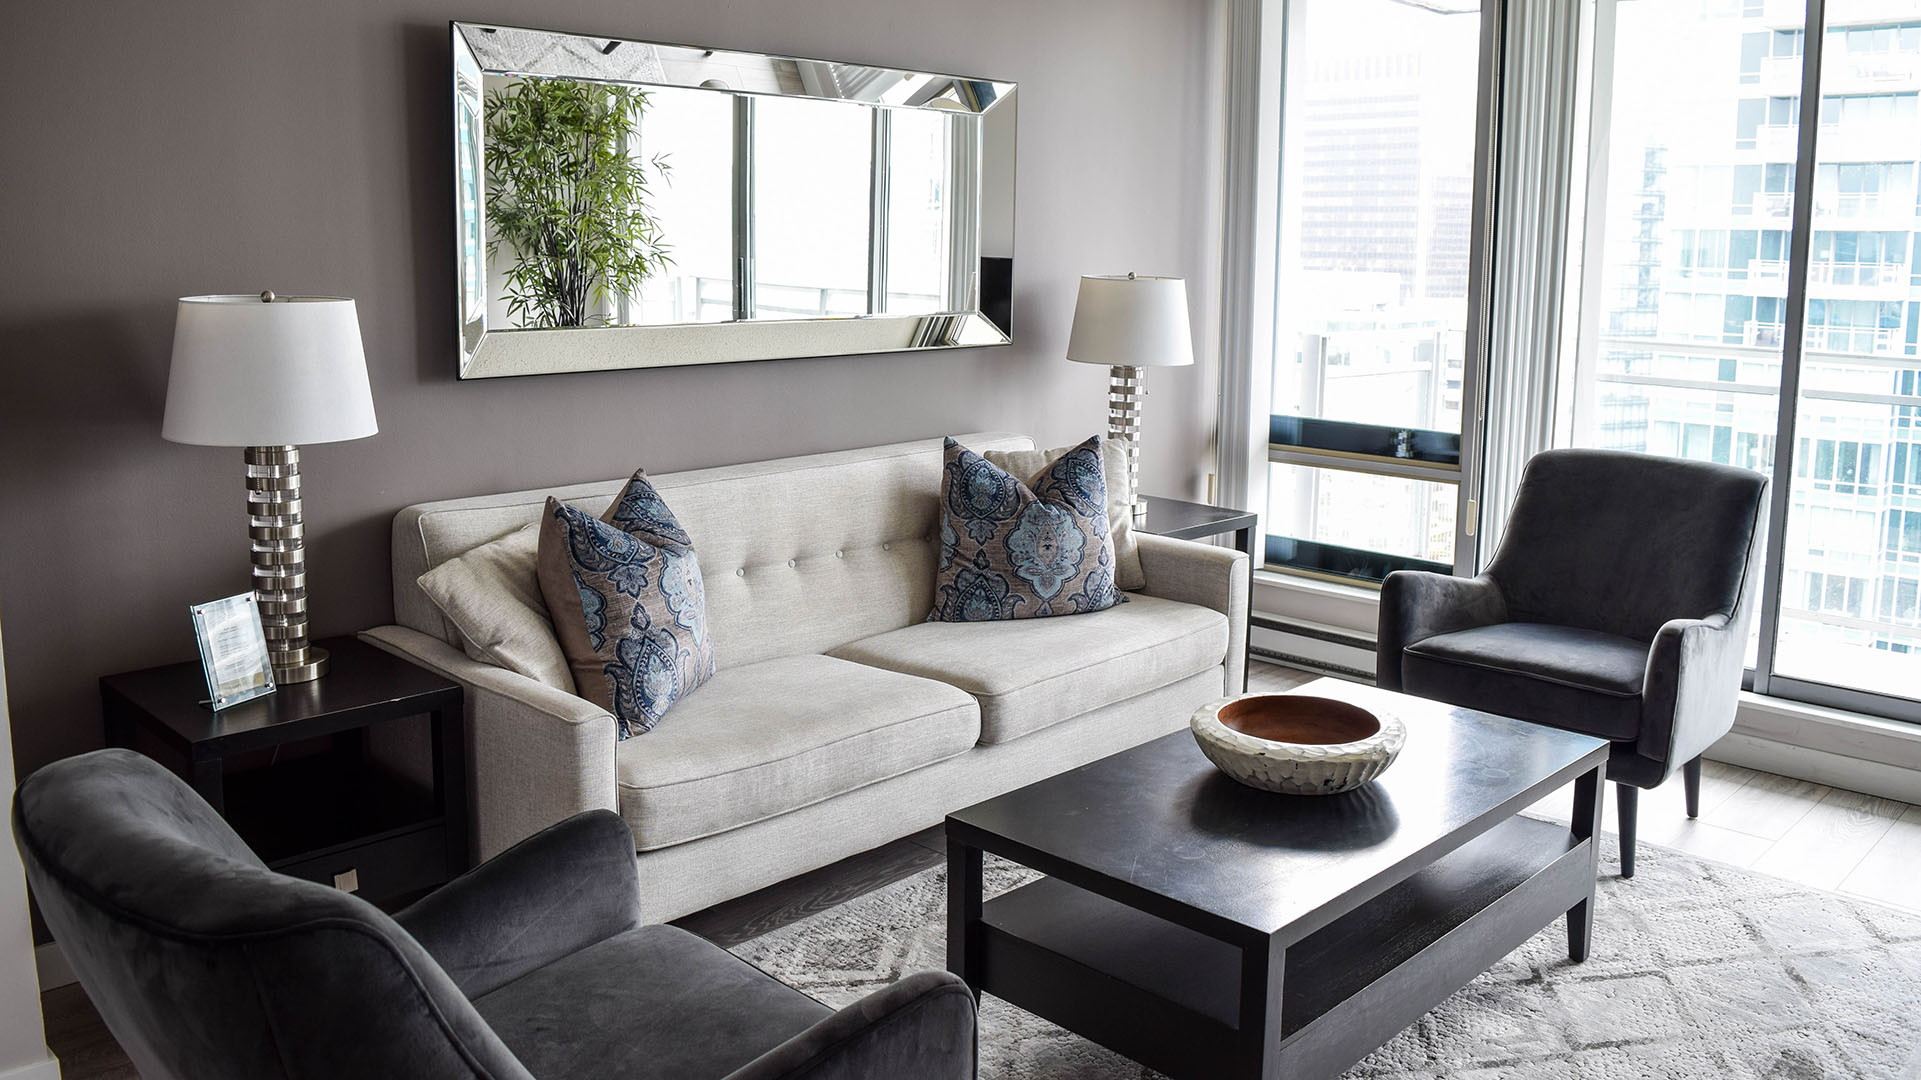 Photo of fully furnished apartment #2905 at The Residences on Georgia, 1288 West Georgia Street, Vancouver, BC